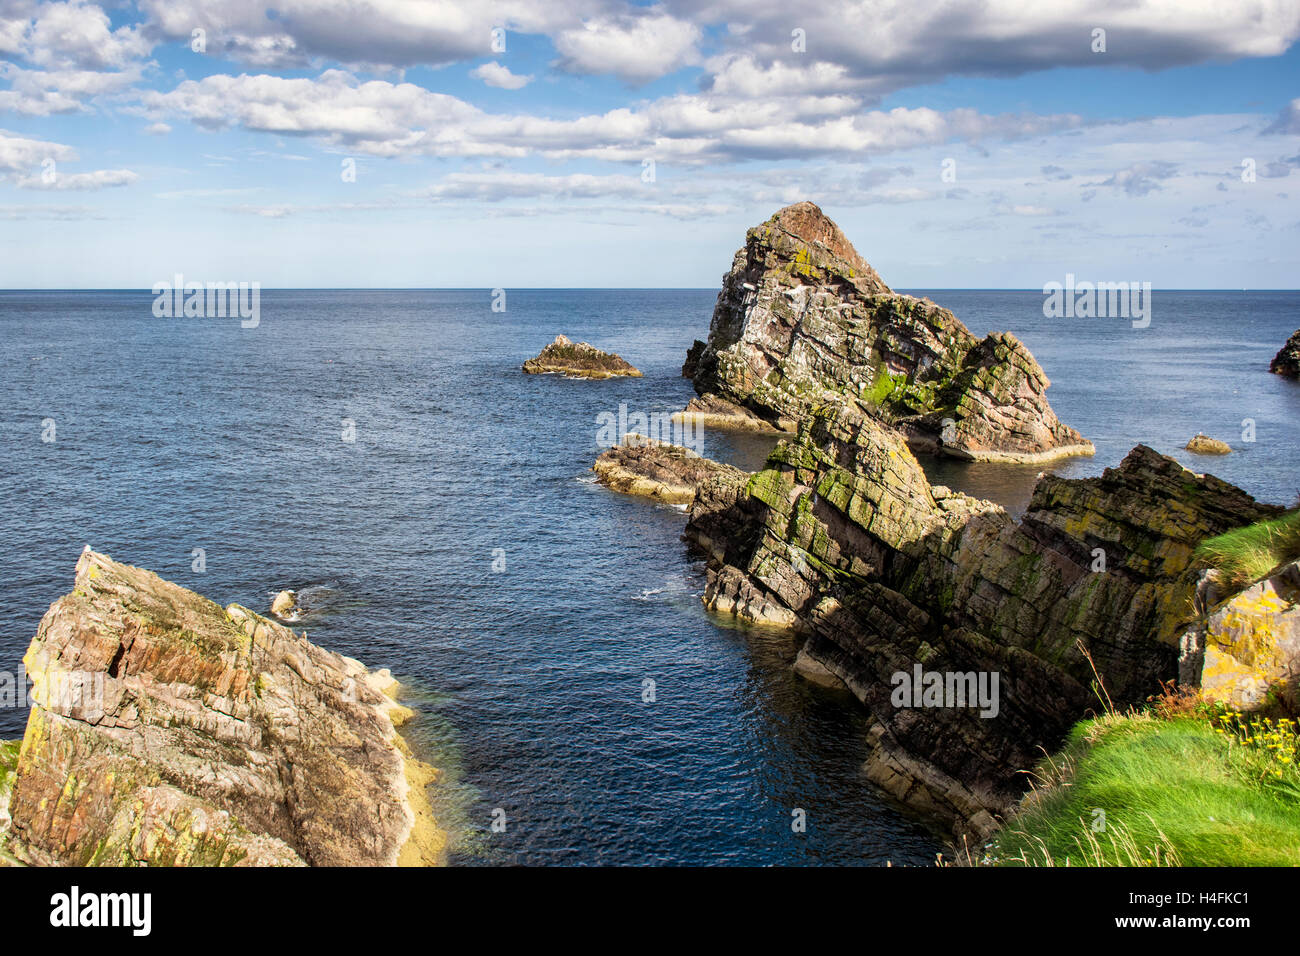 Bow fiddle rock in Scotland - Stock Image